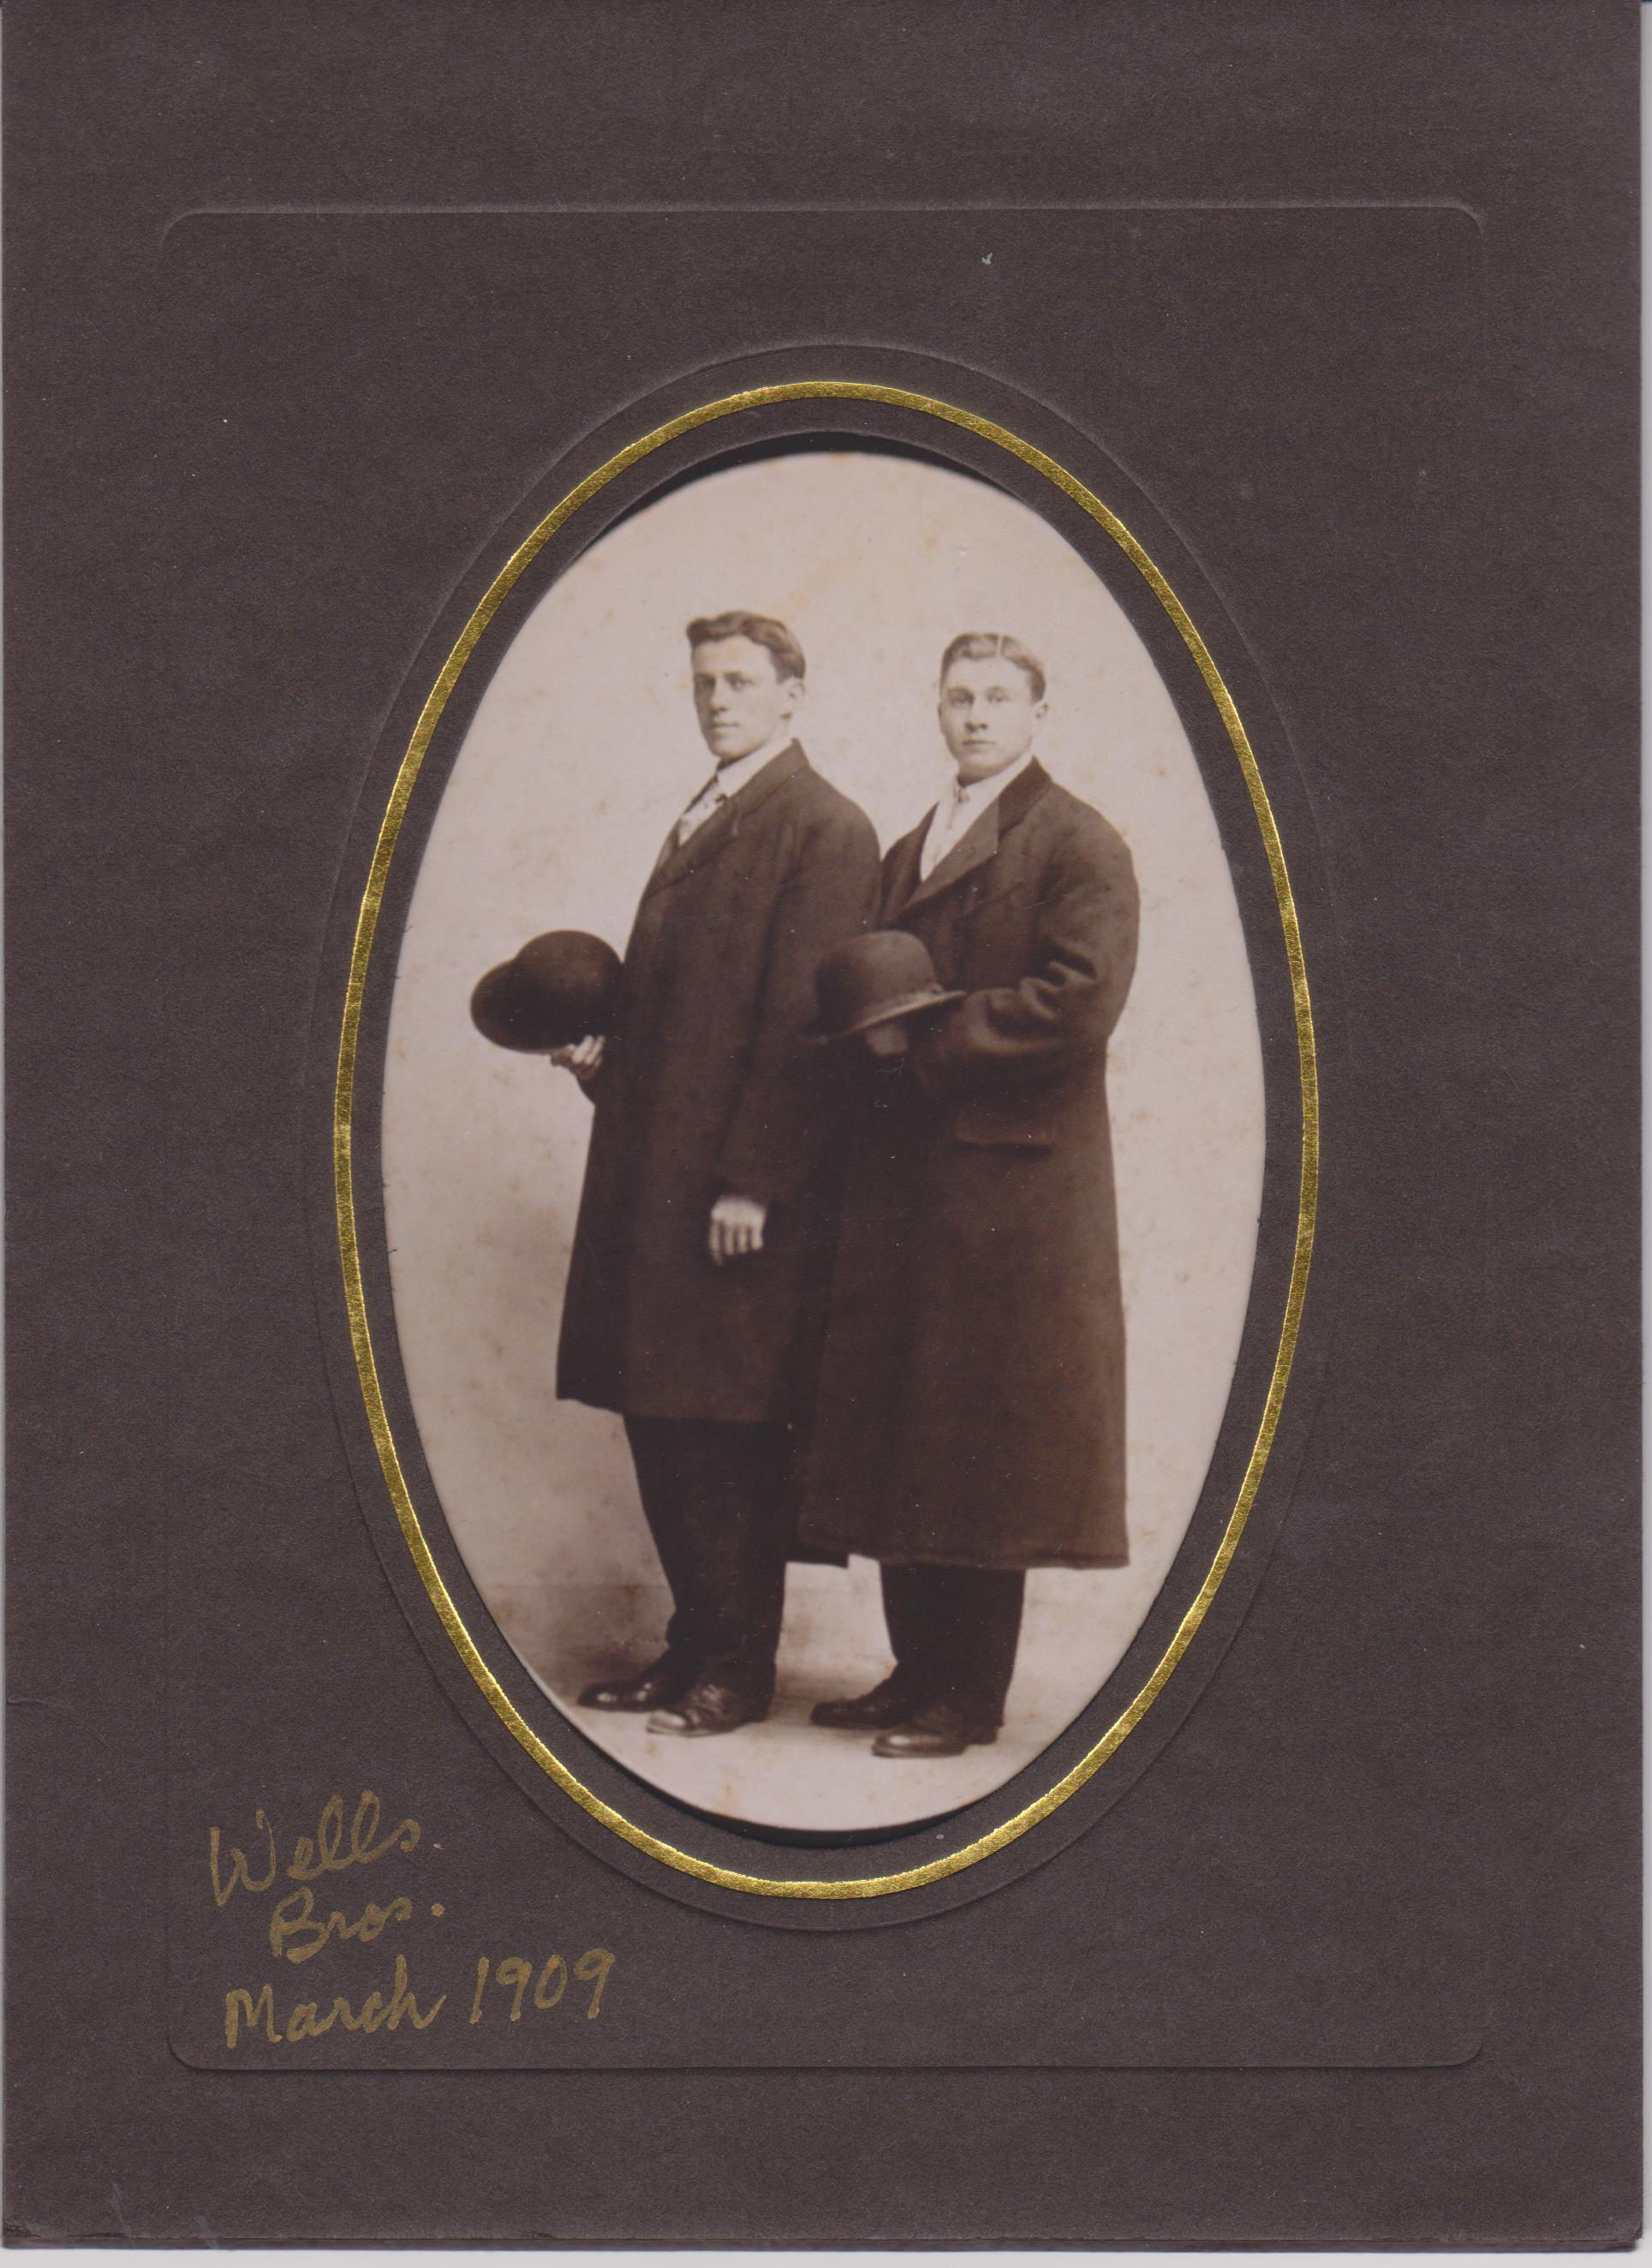 "Framed sepia full length portrait photograph, annotated with ""Wells Bros. March 1909"" showing two twentyish men in great coats, holding their hats, with serious demeanours"